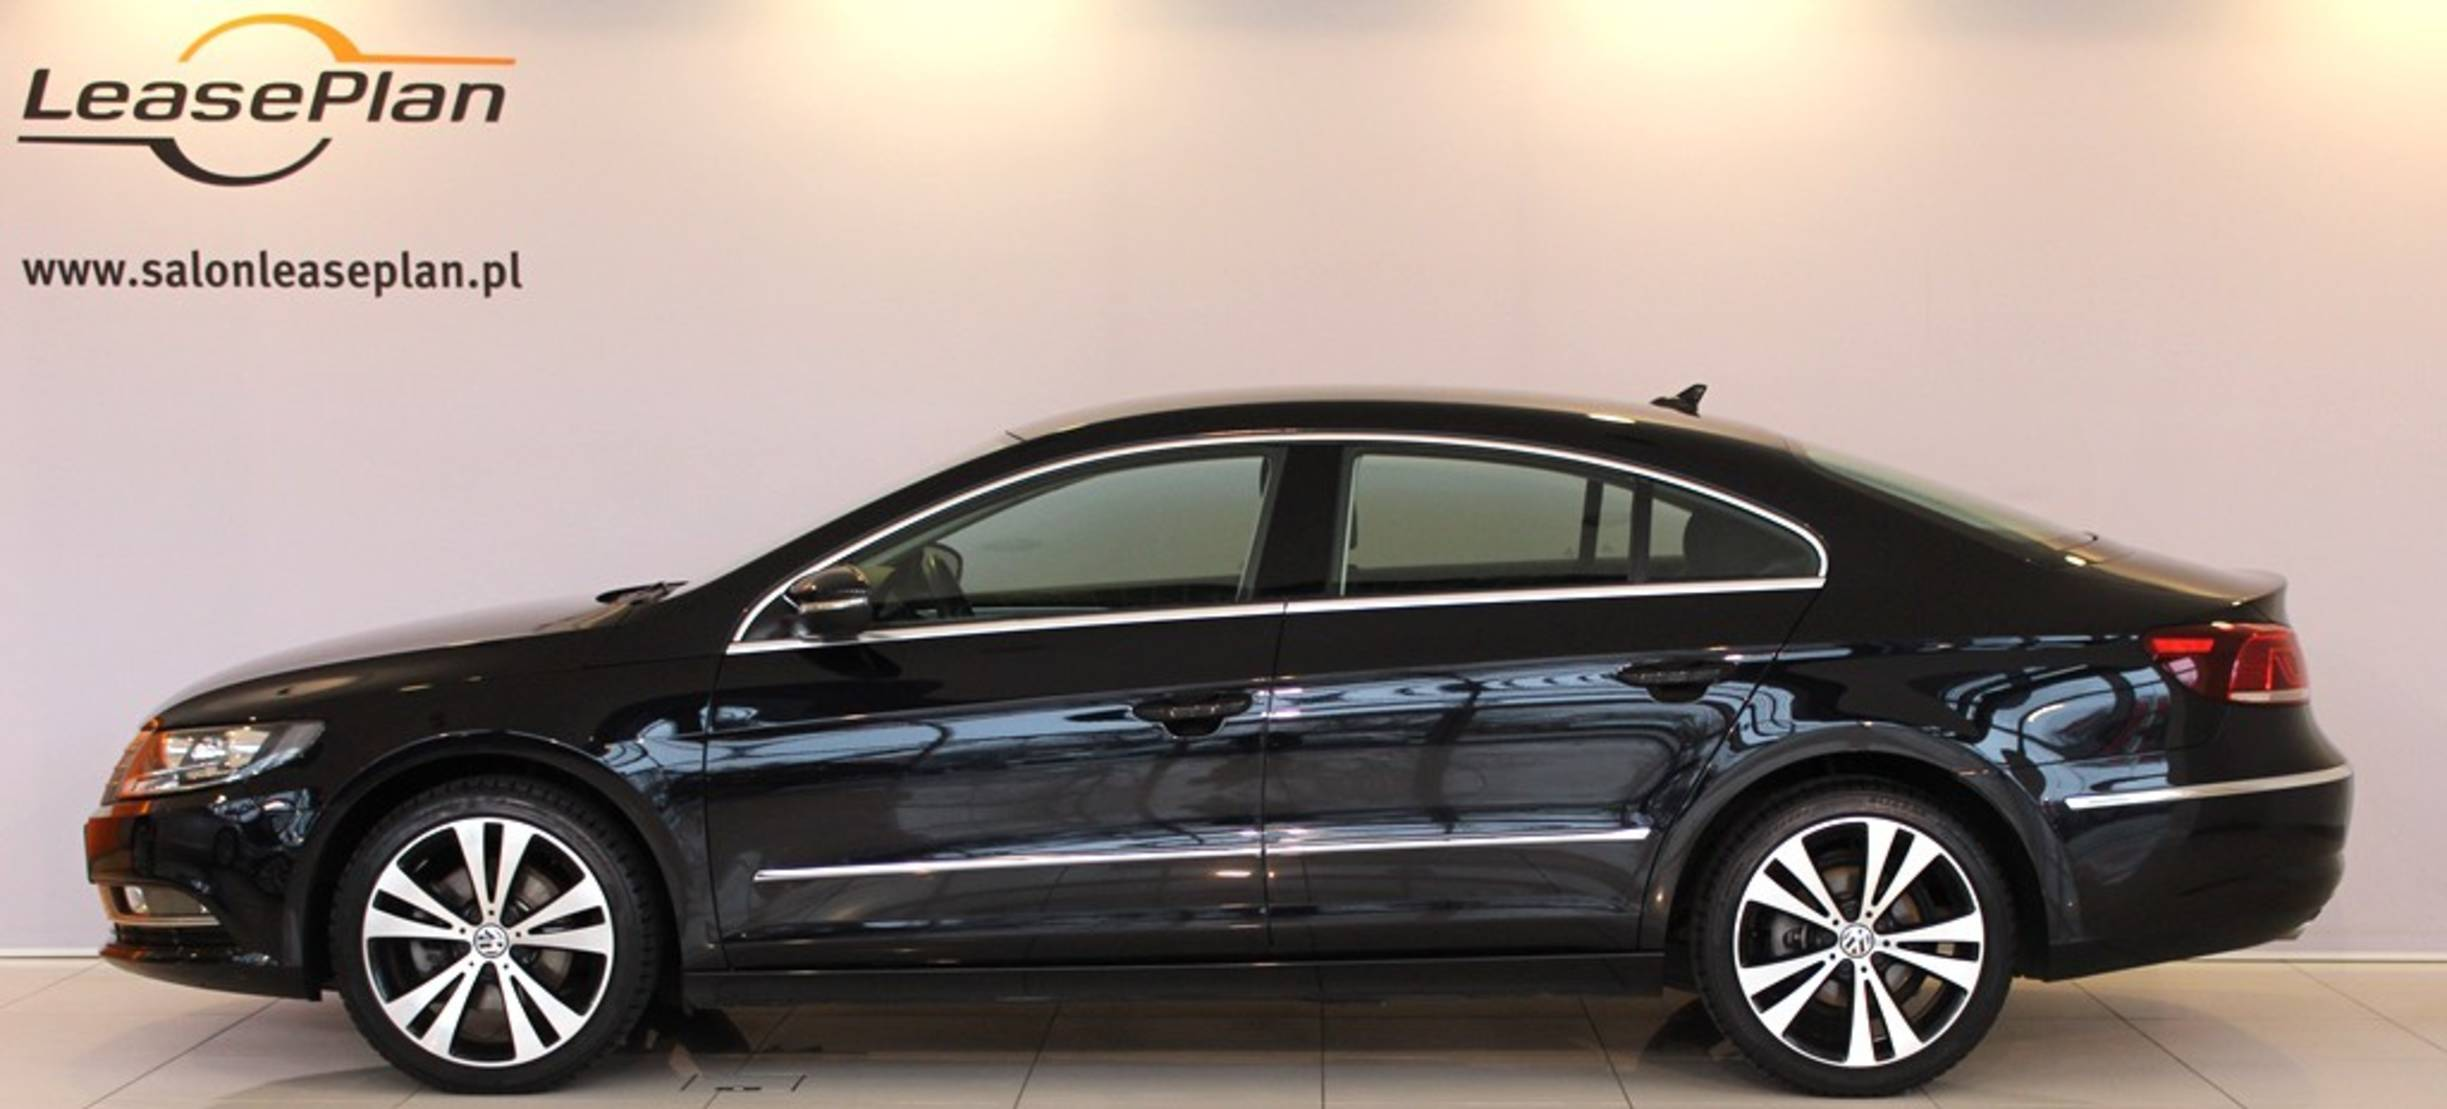 Volkswagen CC 2.0 TDI BlueMotion Technology DSG detail2